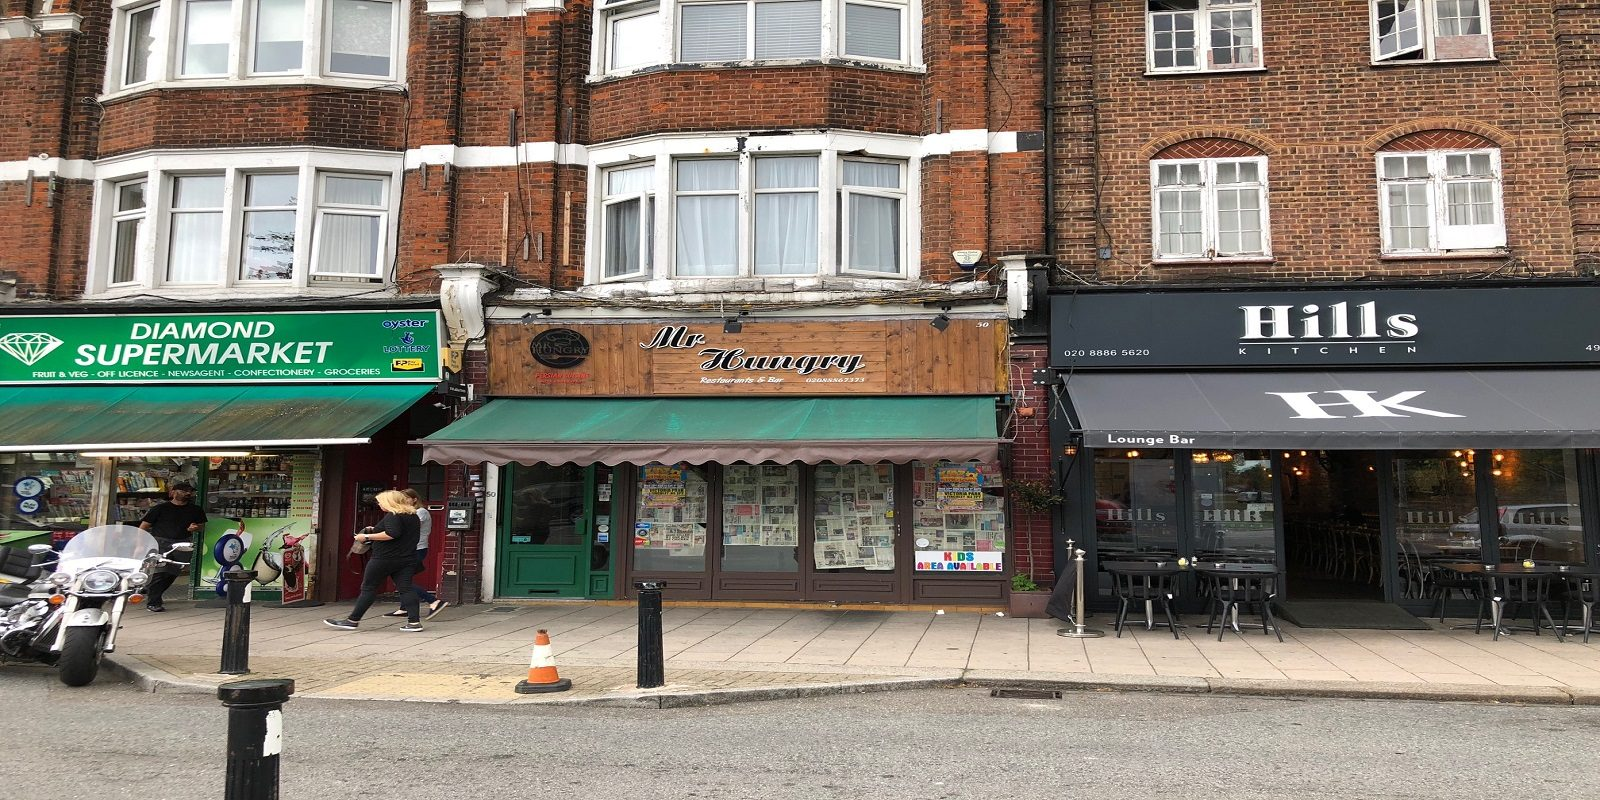 RESTAURANT TO LET IN SOUTHGATE